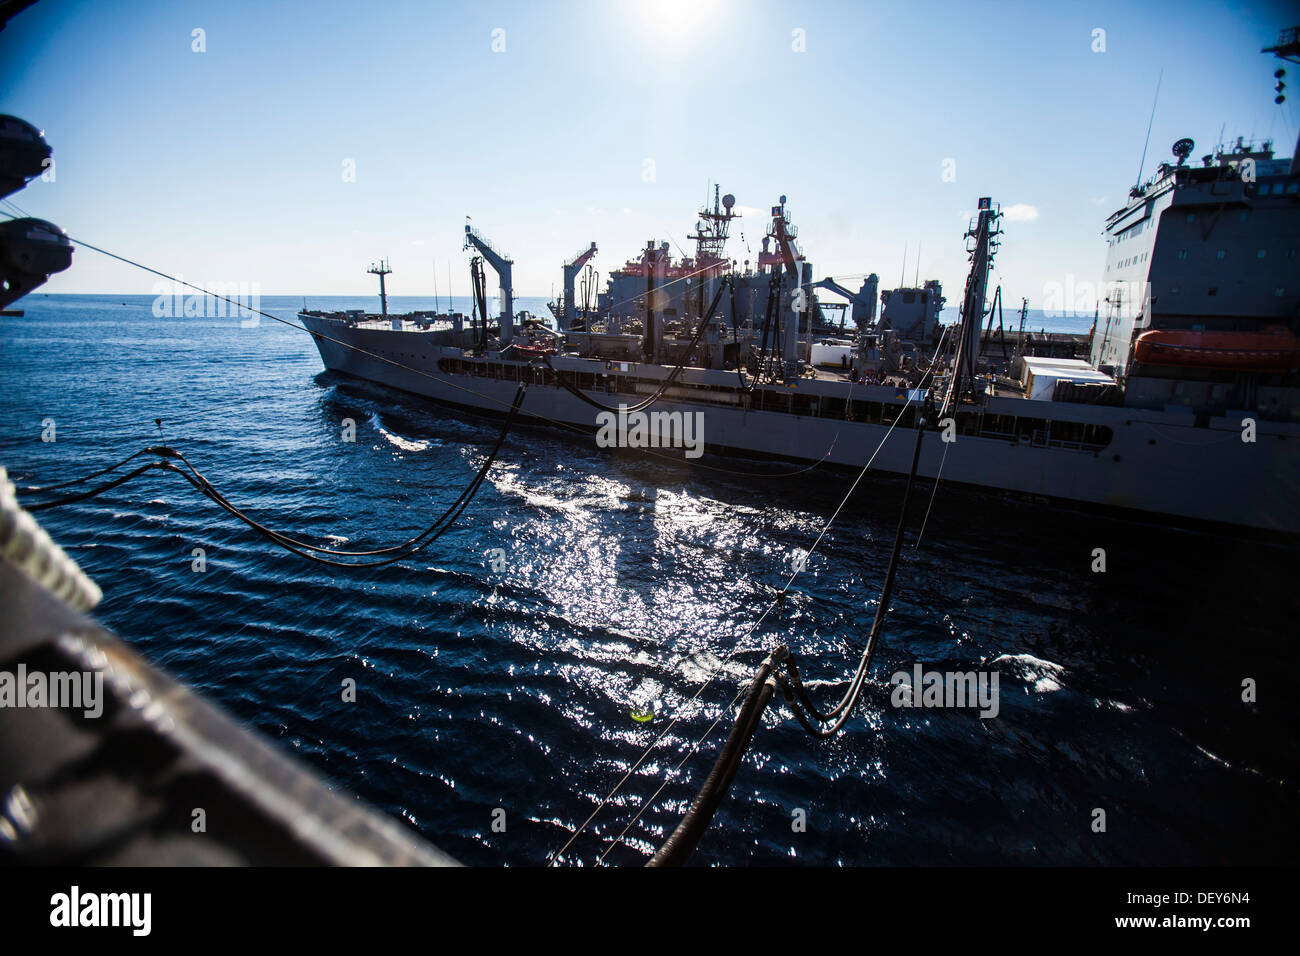 The fleet replenishment oiler USNS Big Horn (T-AOE 198), right, conducts a replenishment-at-sea with the amphibious assault ship USS Bataan (LHD 5) during the 22nd Marine Expeditionary Unit (MEU)'s PHIBRON/MEU Integration Training exercise Sept. 20, 2013. - Stock Image